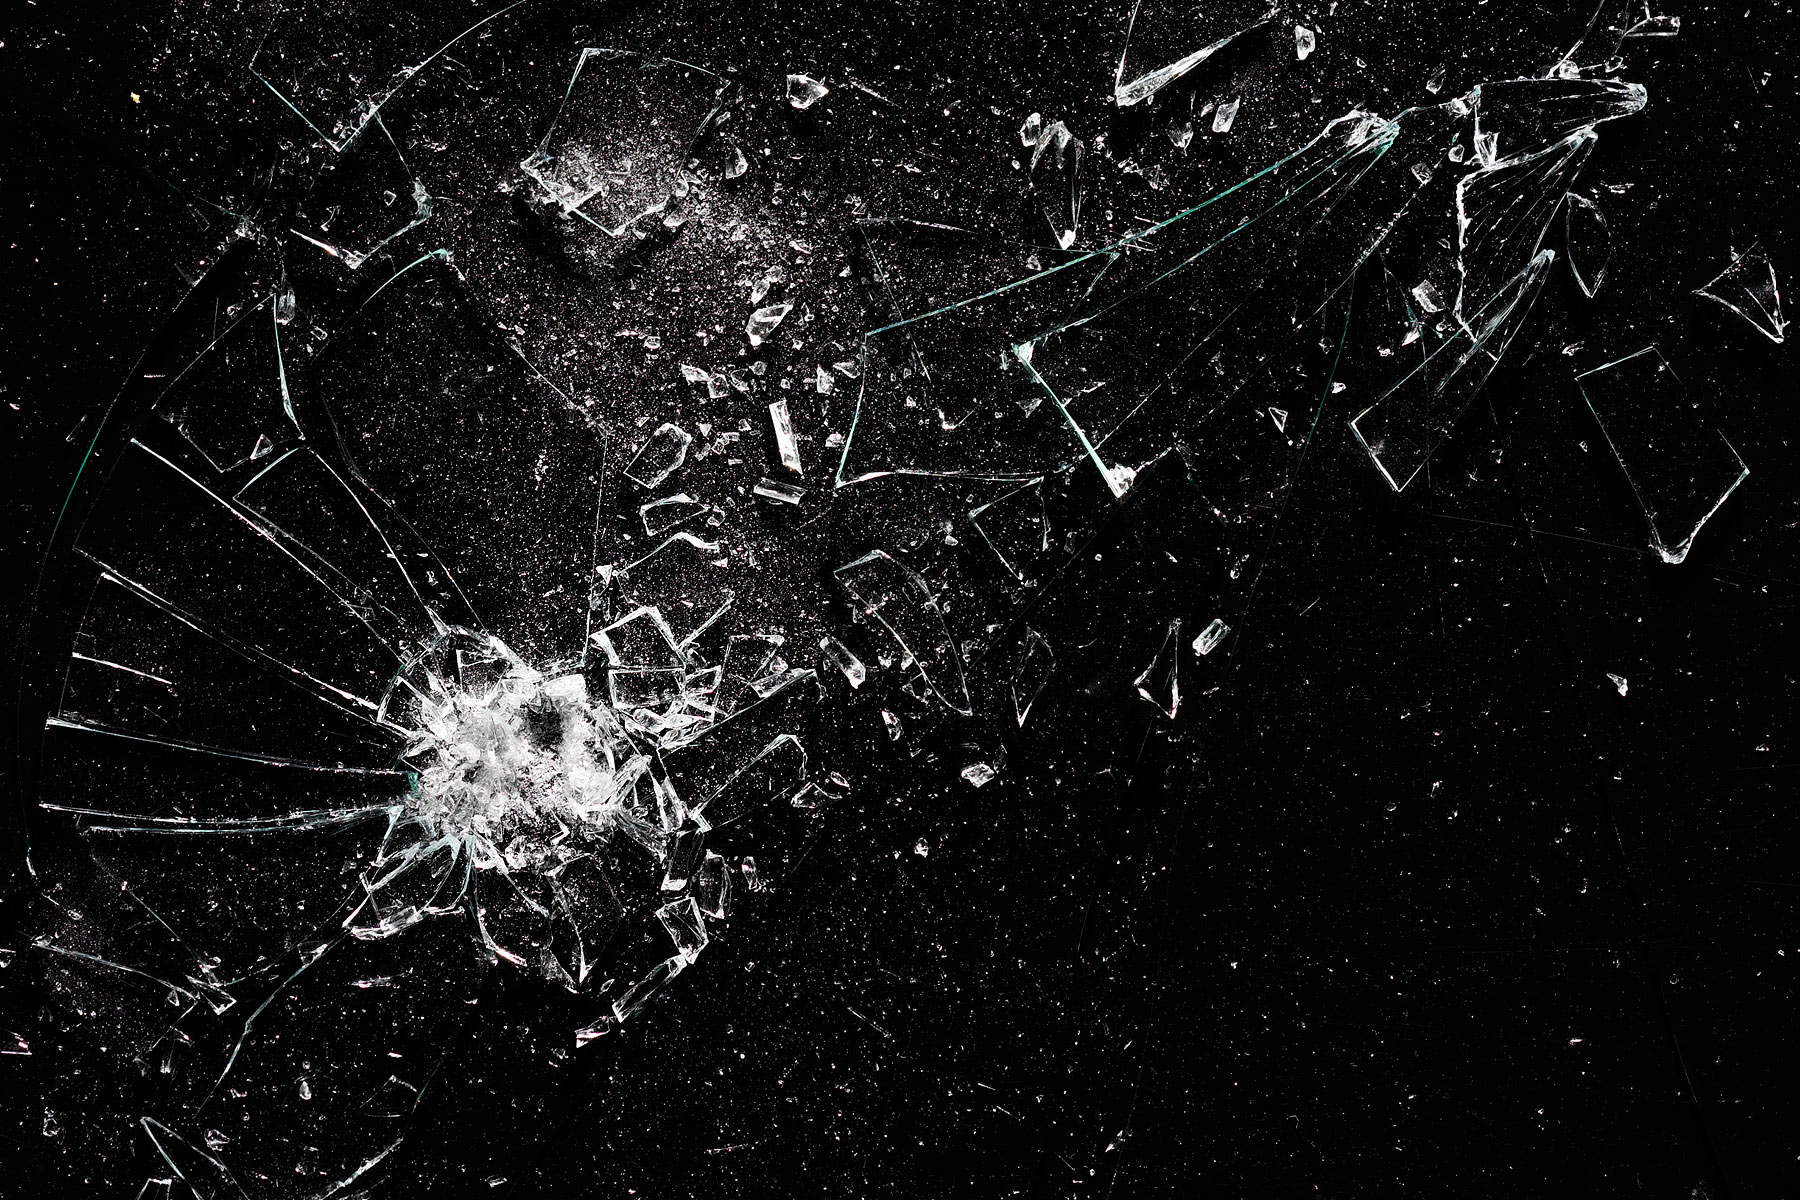 Broken_glass_3